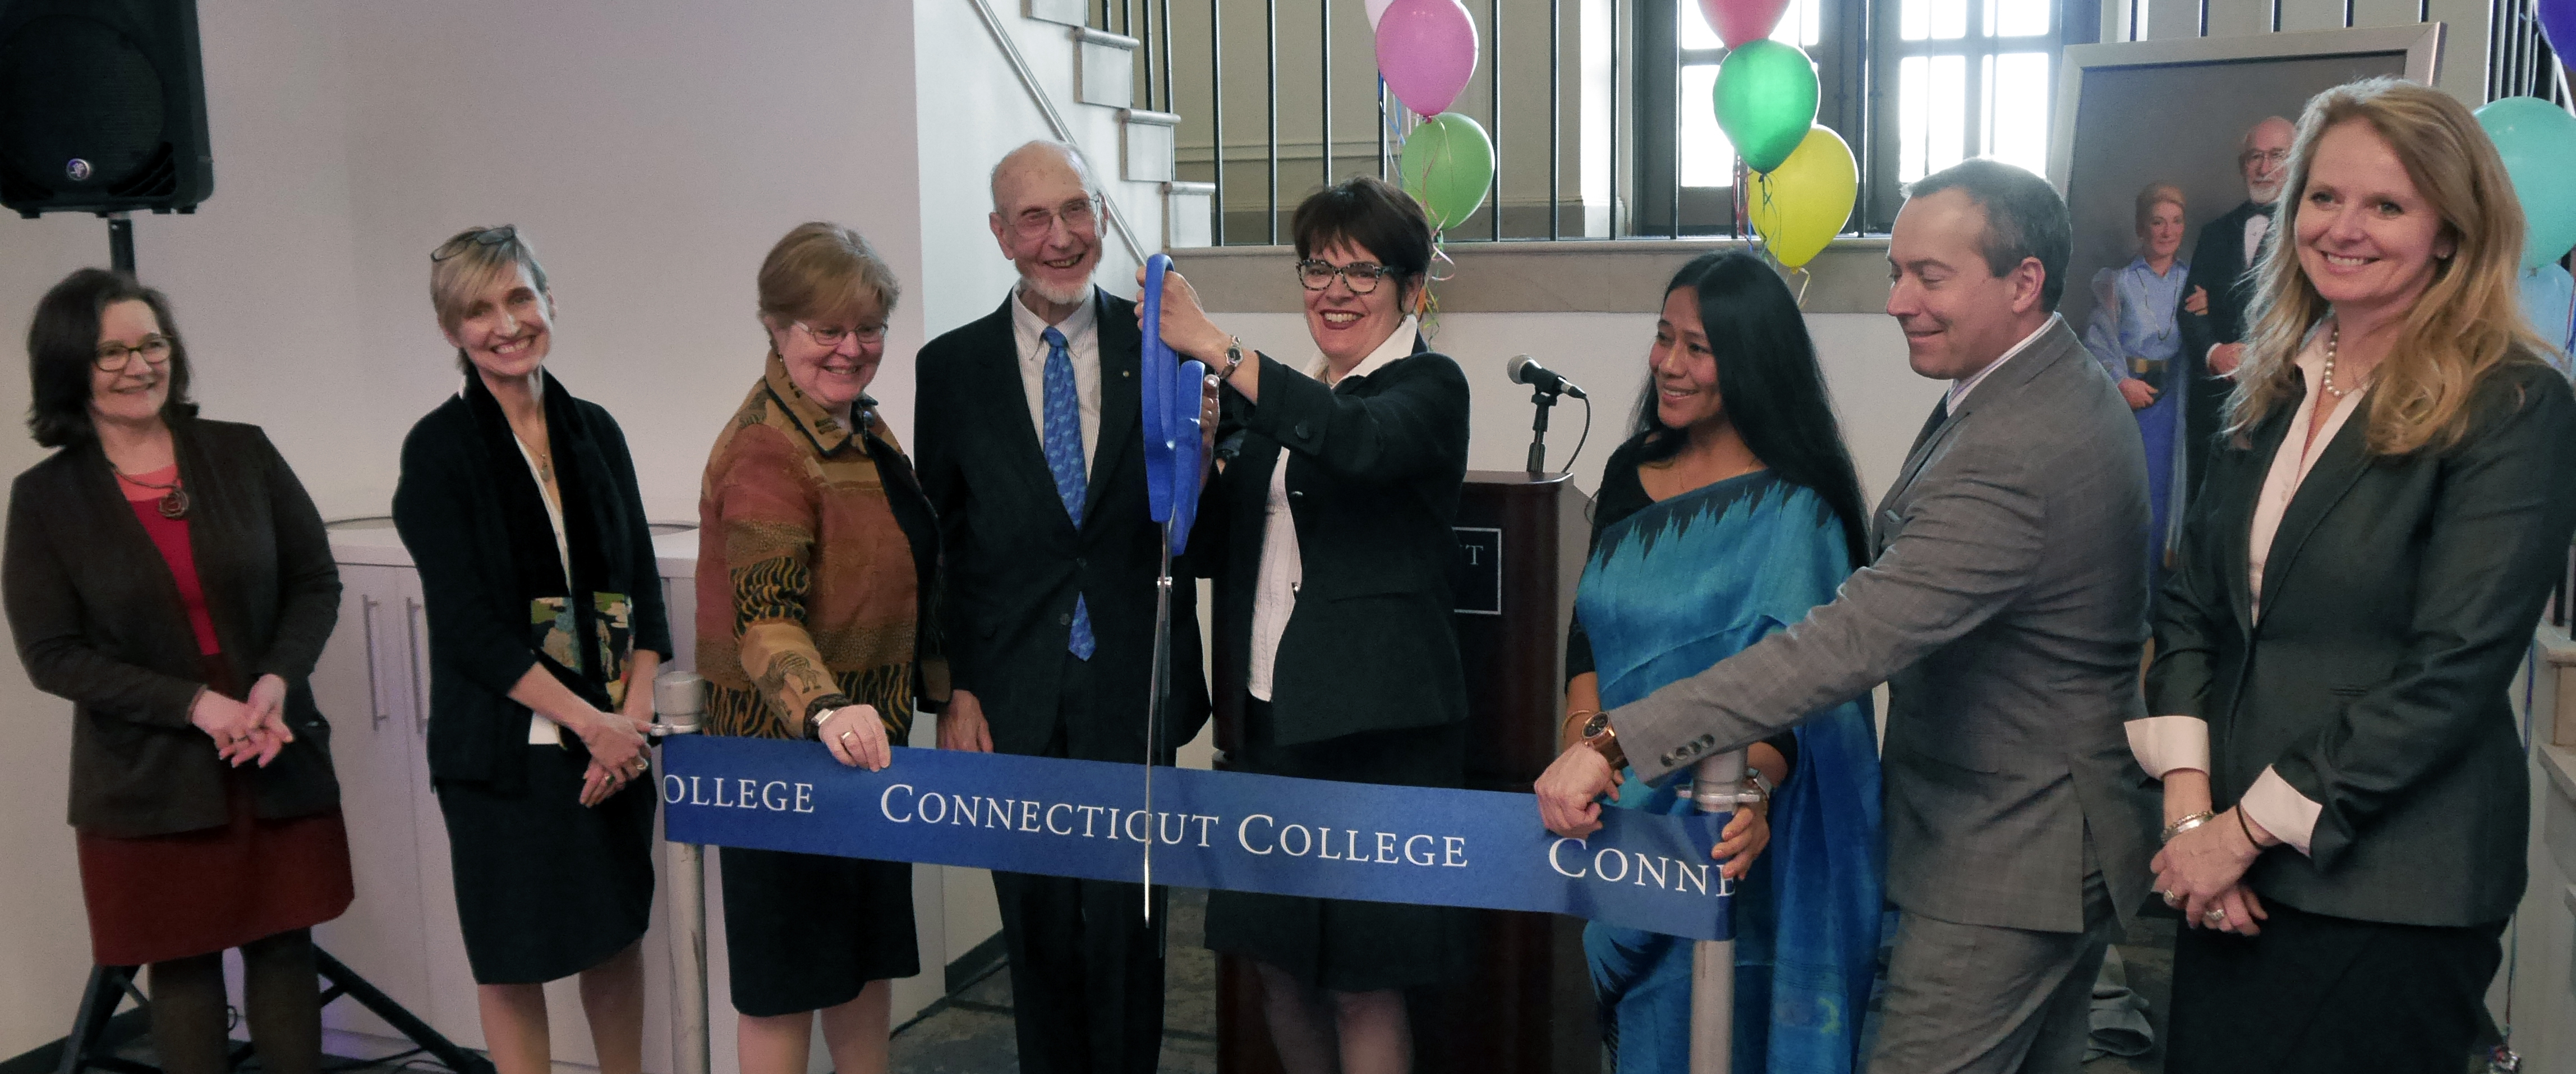 Katherine Bergeron cuts the ribbon to officially dedicate the Otto and Fran Walter Commons for Global Study and Engagement